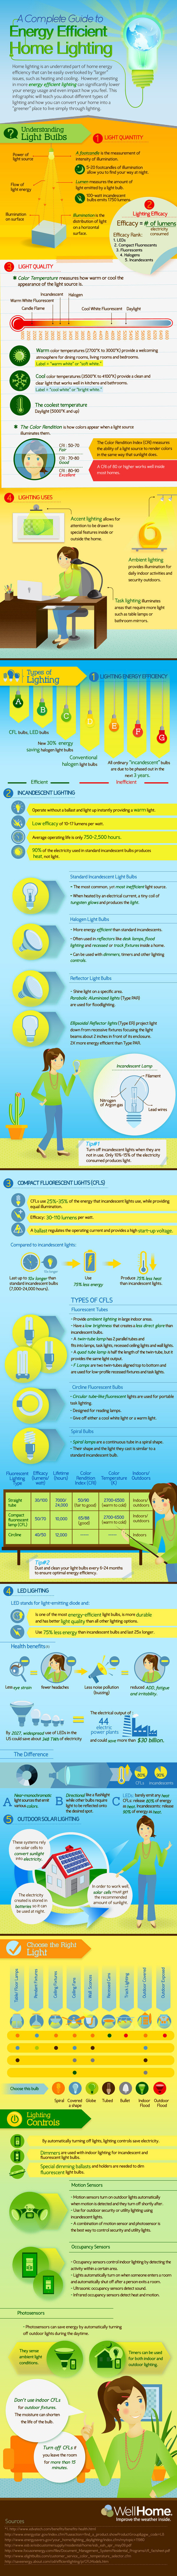 Complete Guide to Energy Efficient Home Lighting